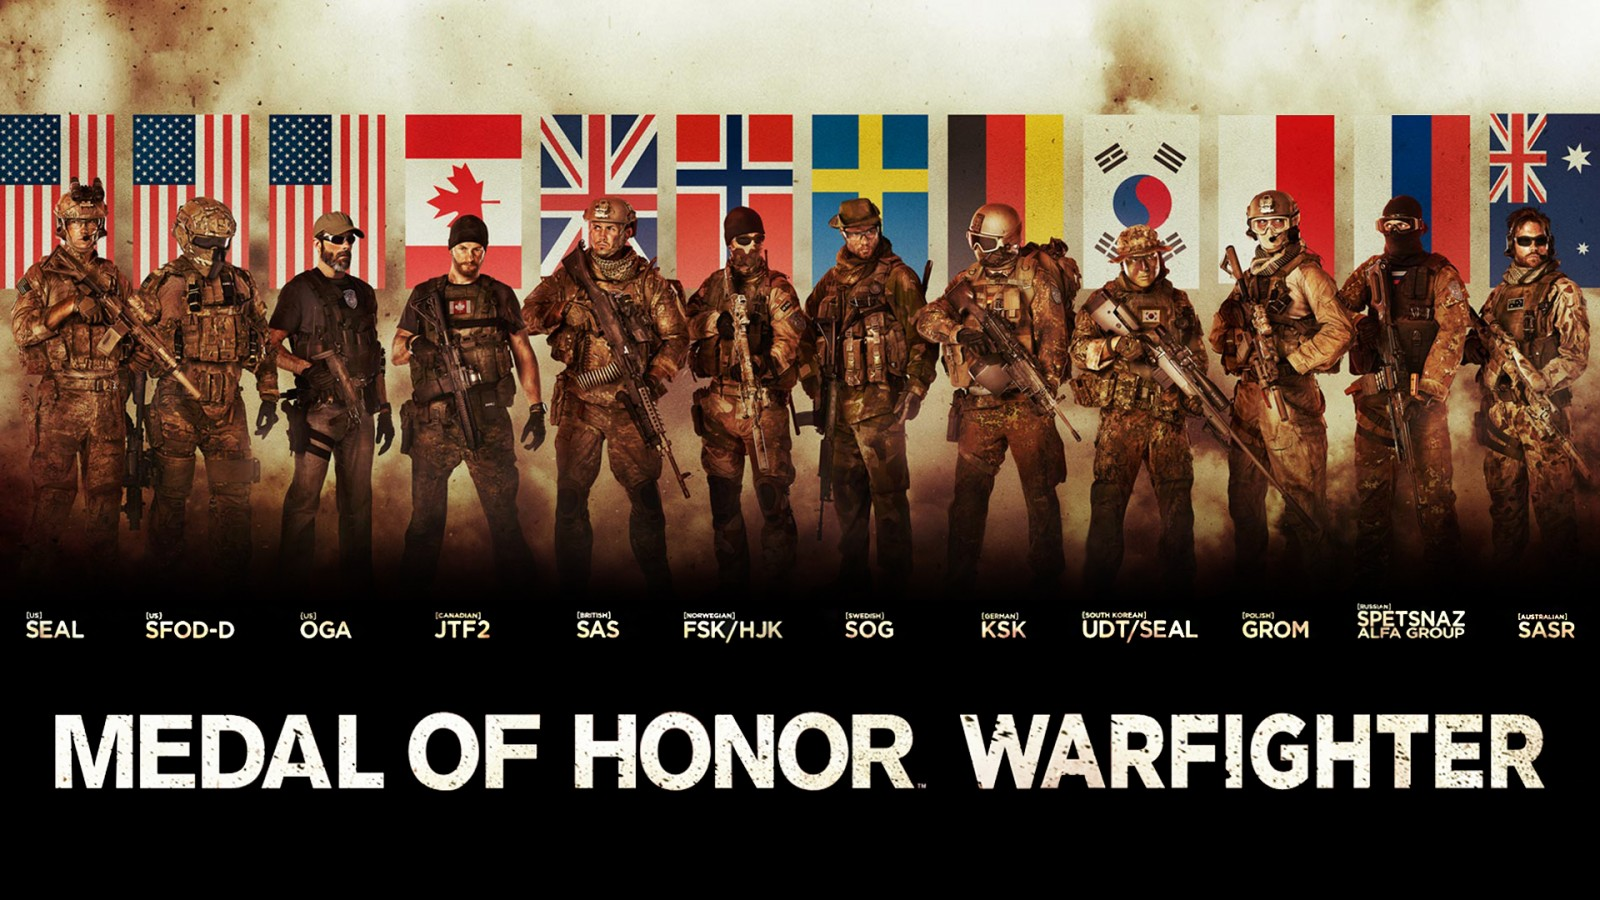 Cute Wallpapers 1366x768 Medal Of Honor Warfighter Tier 1 Special Forces Wallpapers